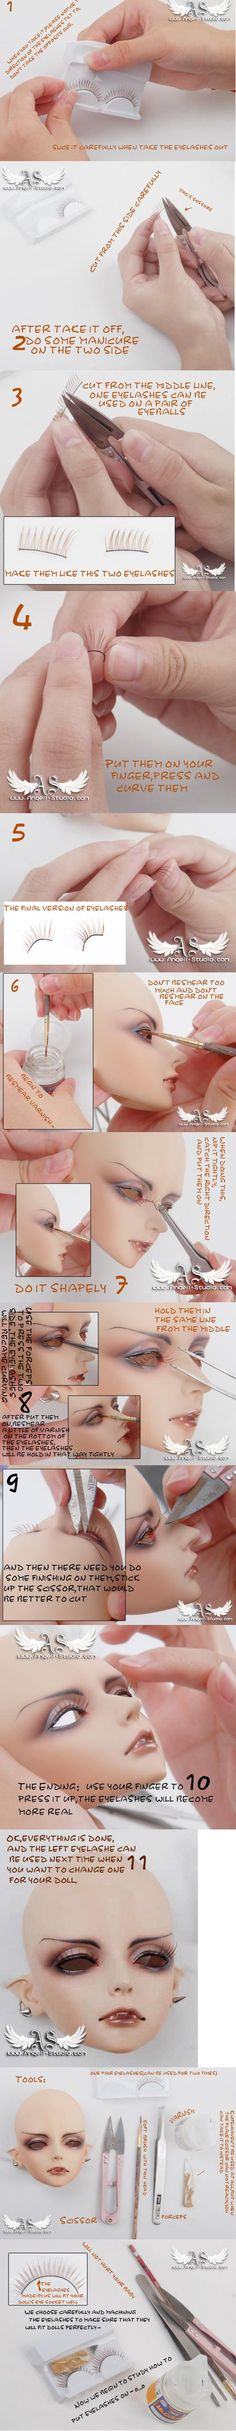 BJD tutorial by Angell-studio on DeviantArt Sculpting Tutorials, Doll Making Tutorials, Doll Crafts, Diy Doll, Ooak Dolls, Barbie Dolls, Art Doll Tutorial, Doll Repaint Tutorial, Polymer Clay Dolls